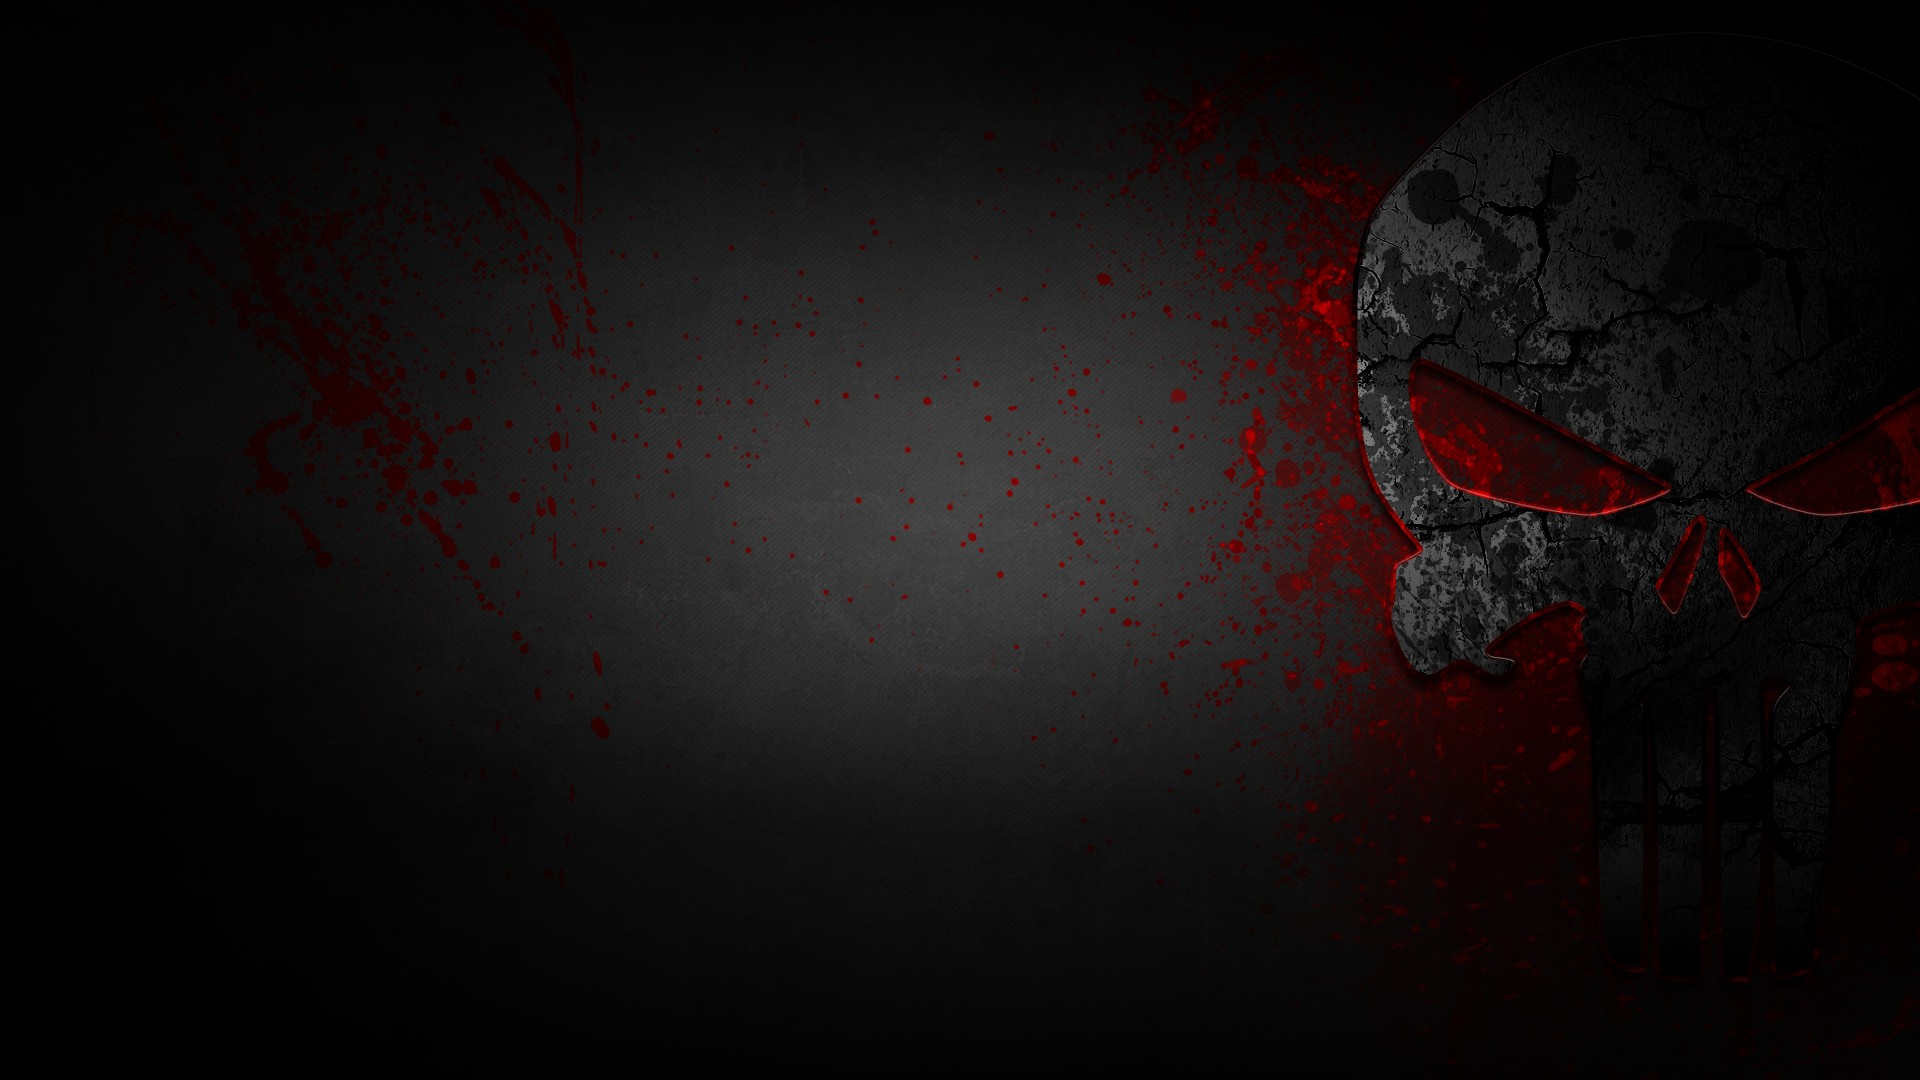 punisher logo wallpapers - photo #31